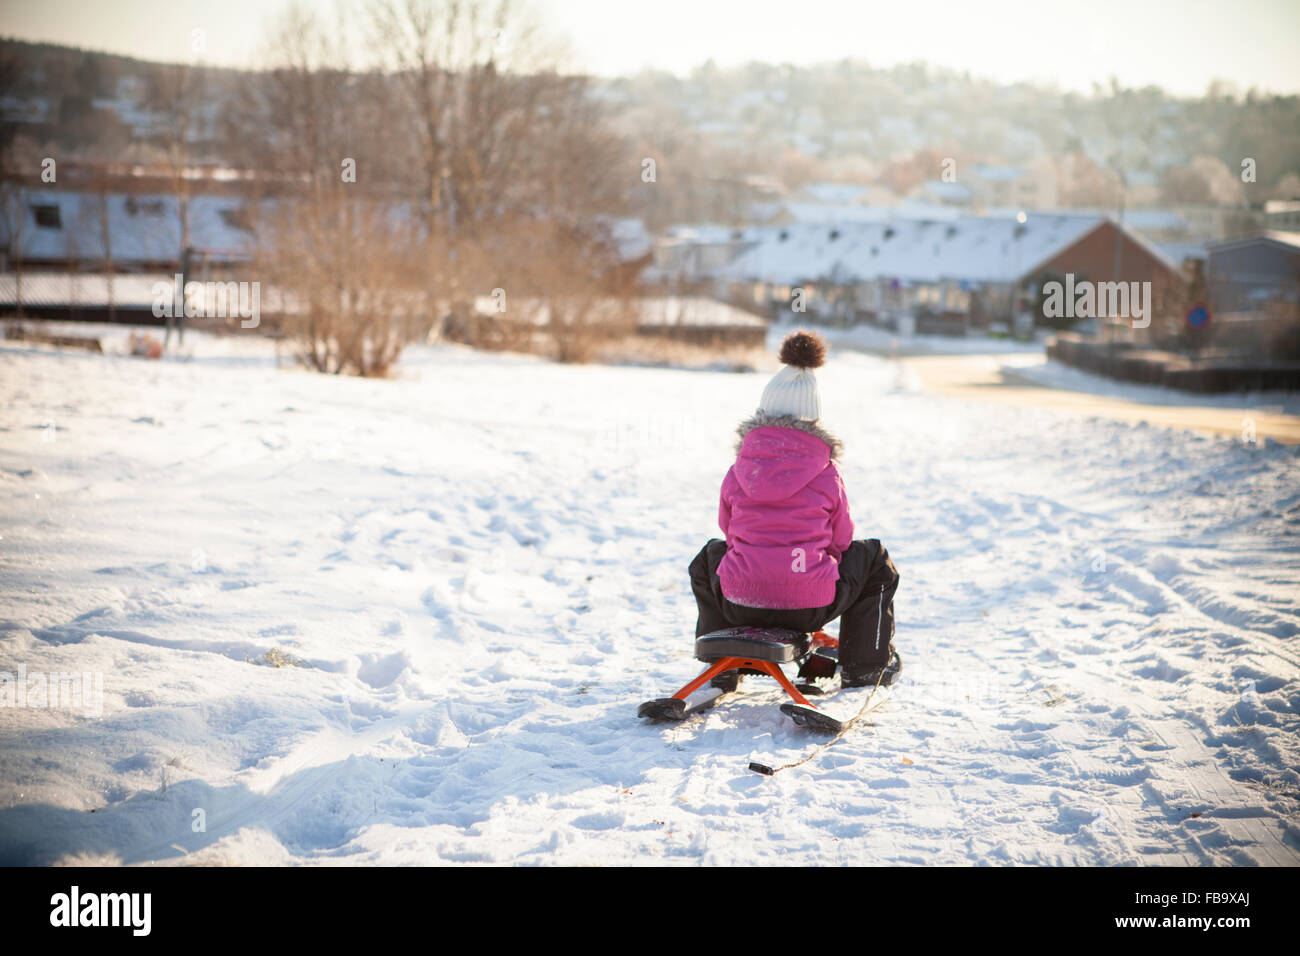 Sweden, Vastergotland, Lerum, Rear view of girl (8-9) sledding along snowy road with townscape in background - Stock Image